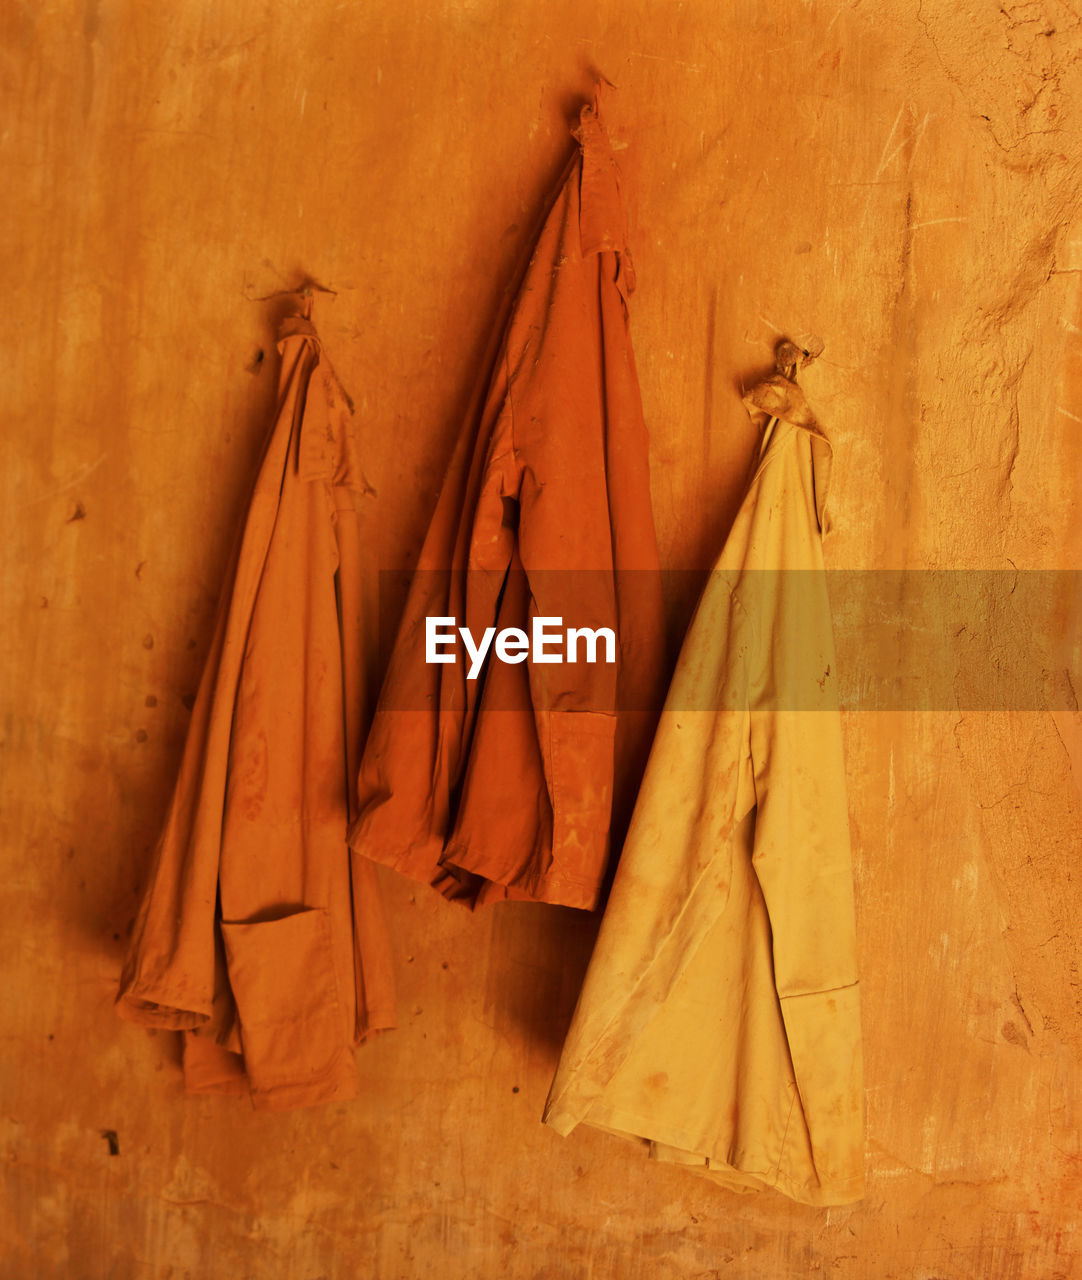 clothing, no people, hanging, indoors, coathanger, coat, wall - building feature, group of objects, wood - material, variation, still life, architecture, group, wall, choice, jacket, medium group of objects, in a row, bag, clean